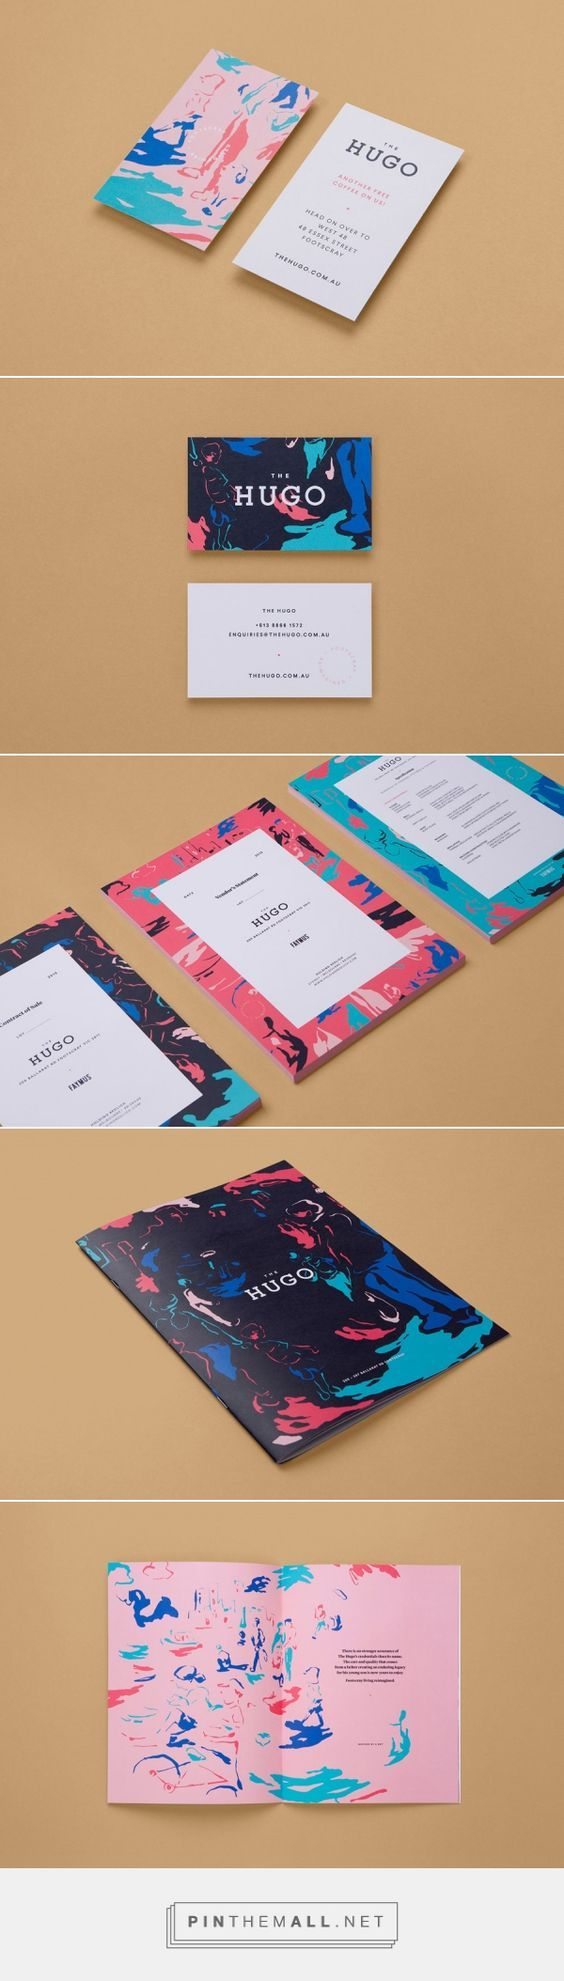 The Hugo Branding by StudioBrave